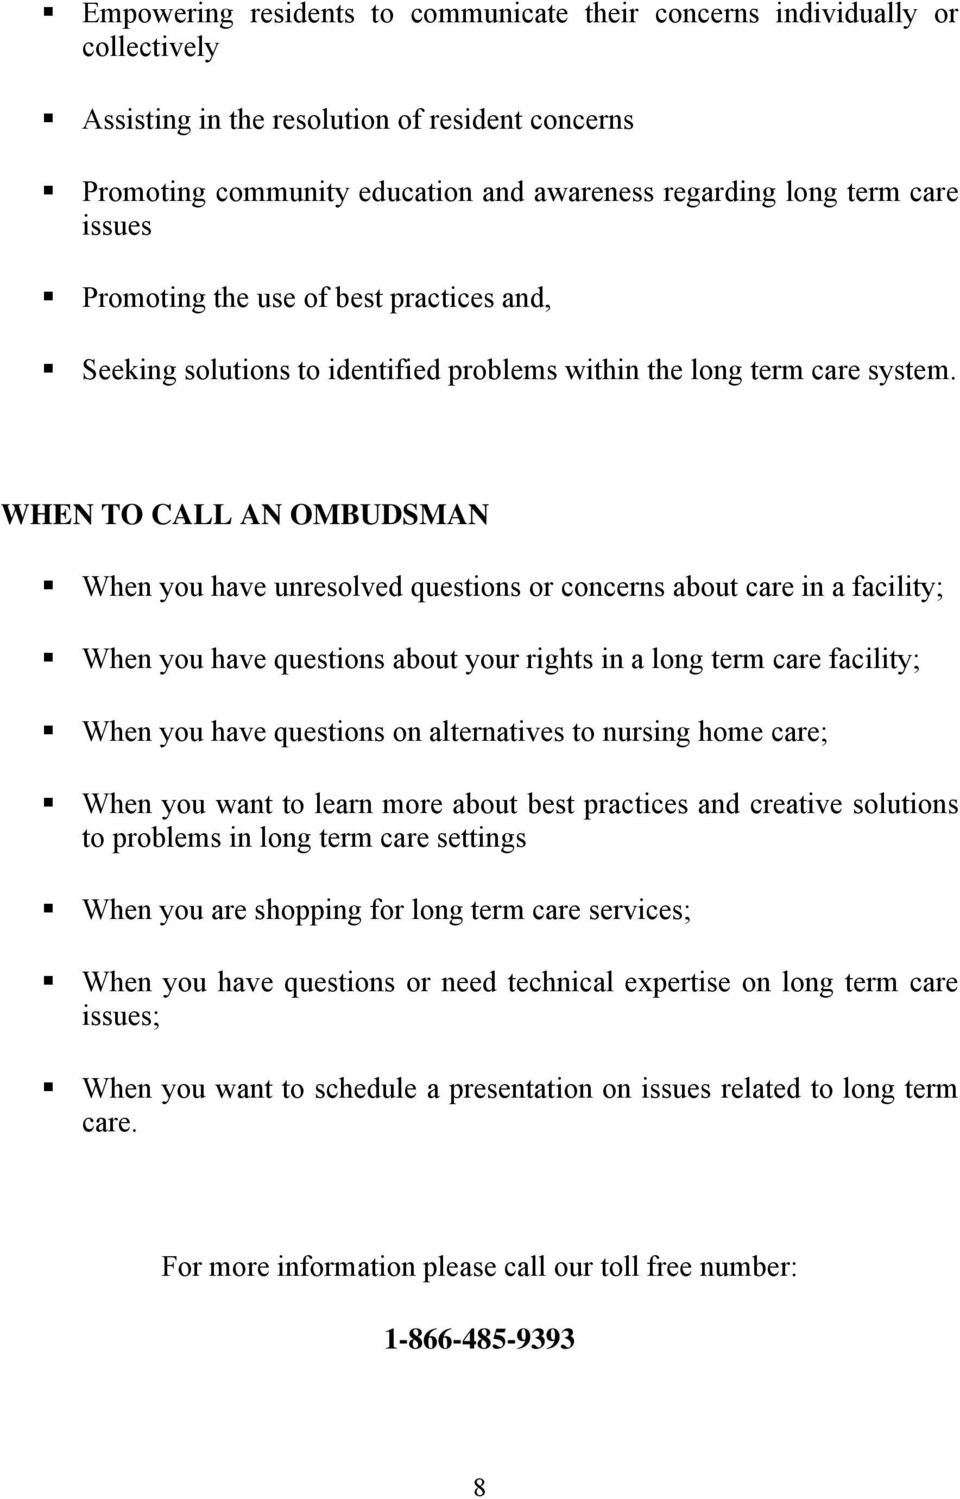 michigan long term care ombudsman program fact sheets brad geller